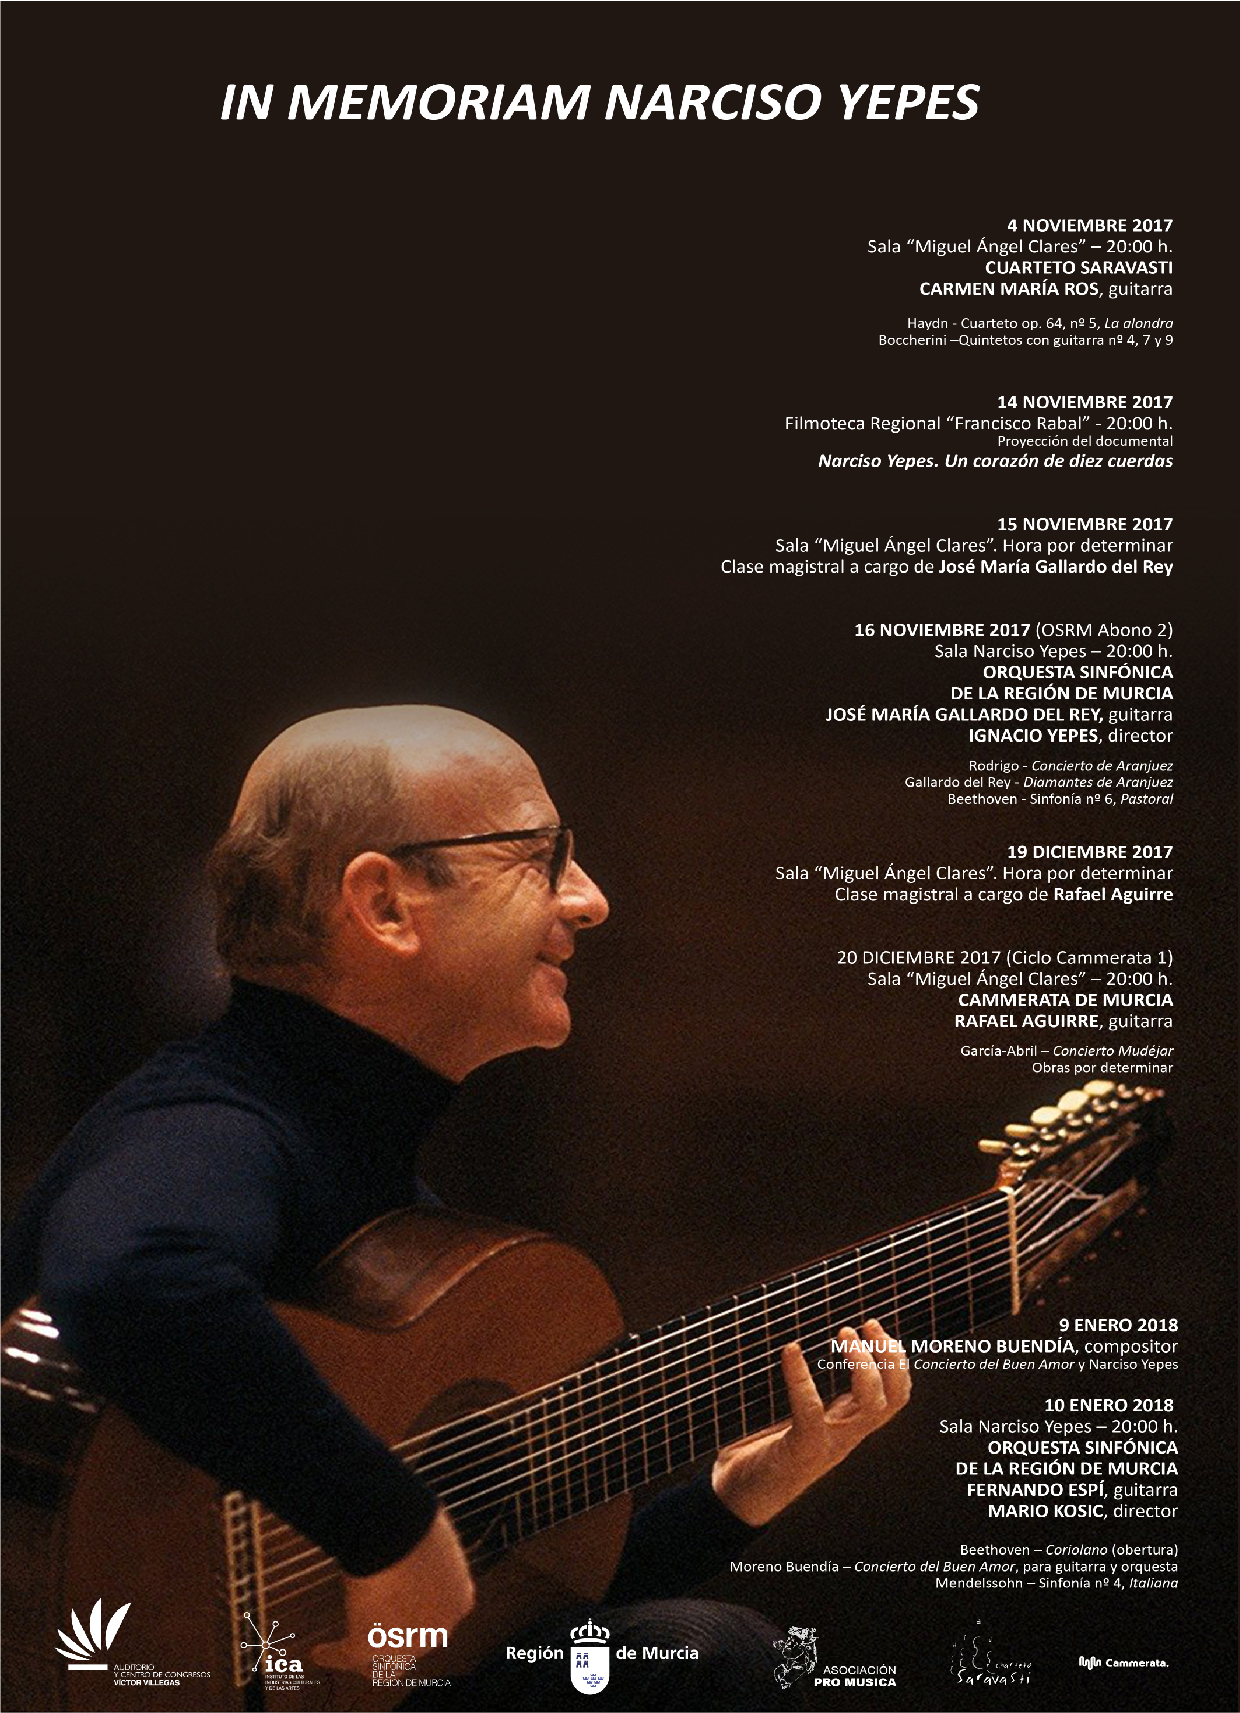 IN MEMORIAM NARCISO YEPES